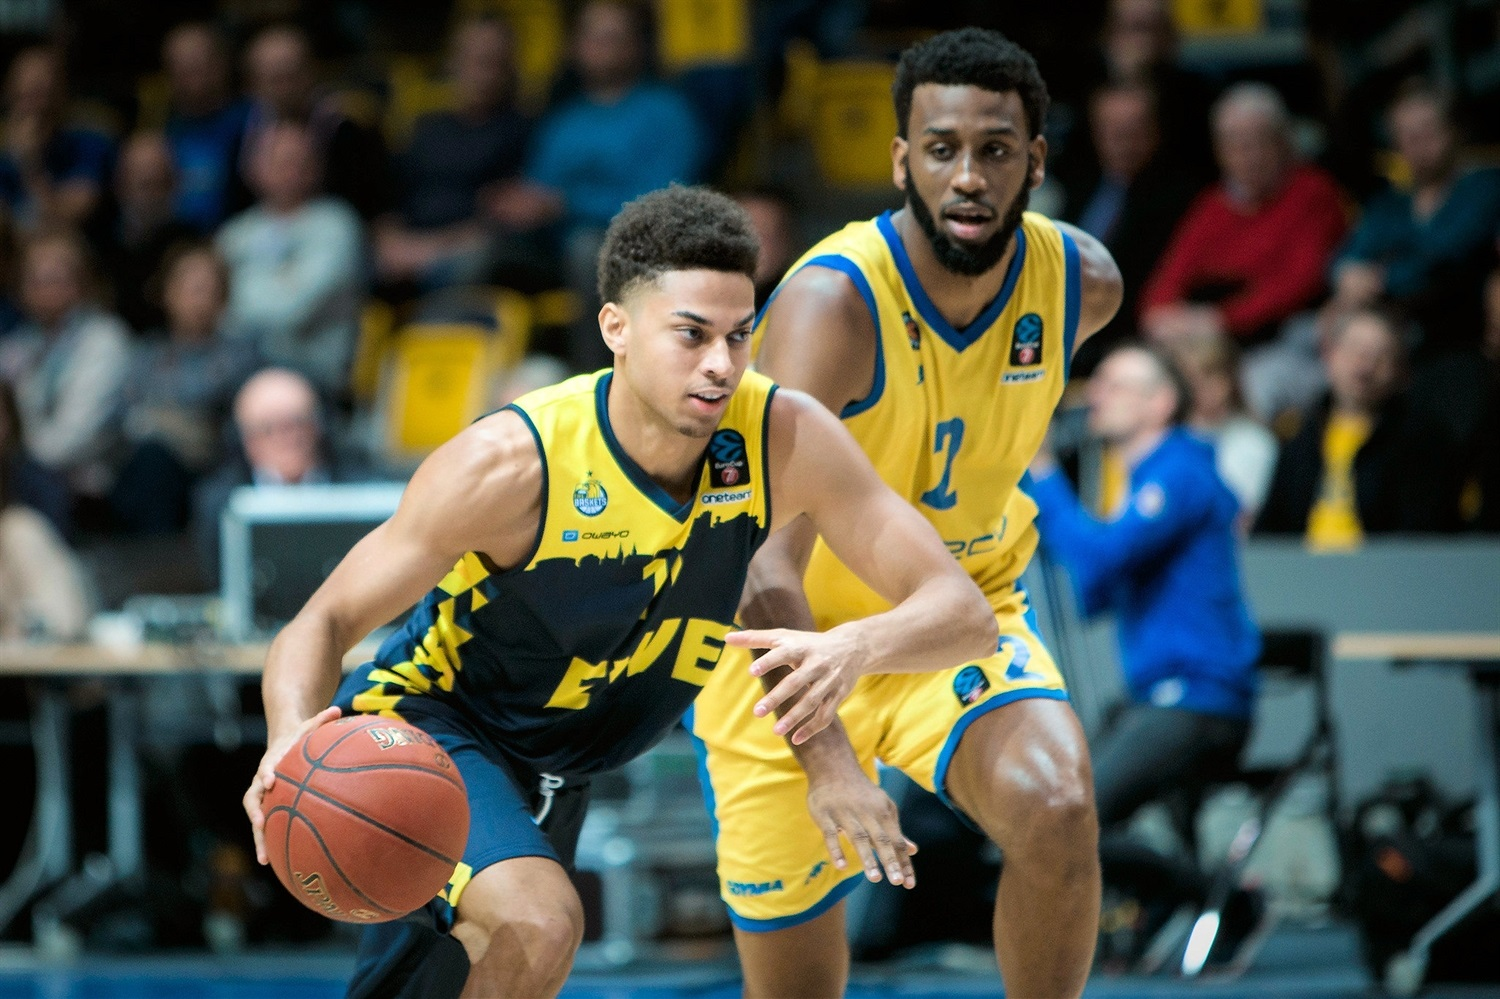 Kevin McClain - EWE Baskets Oldenburg (photo Arka) - EC19